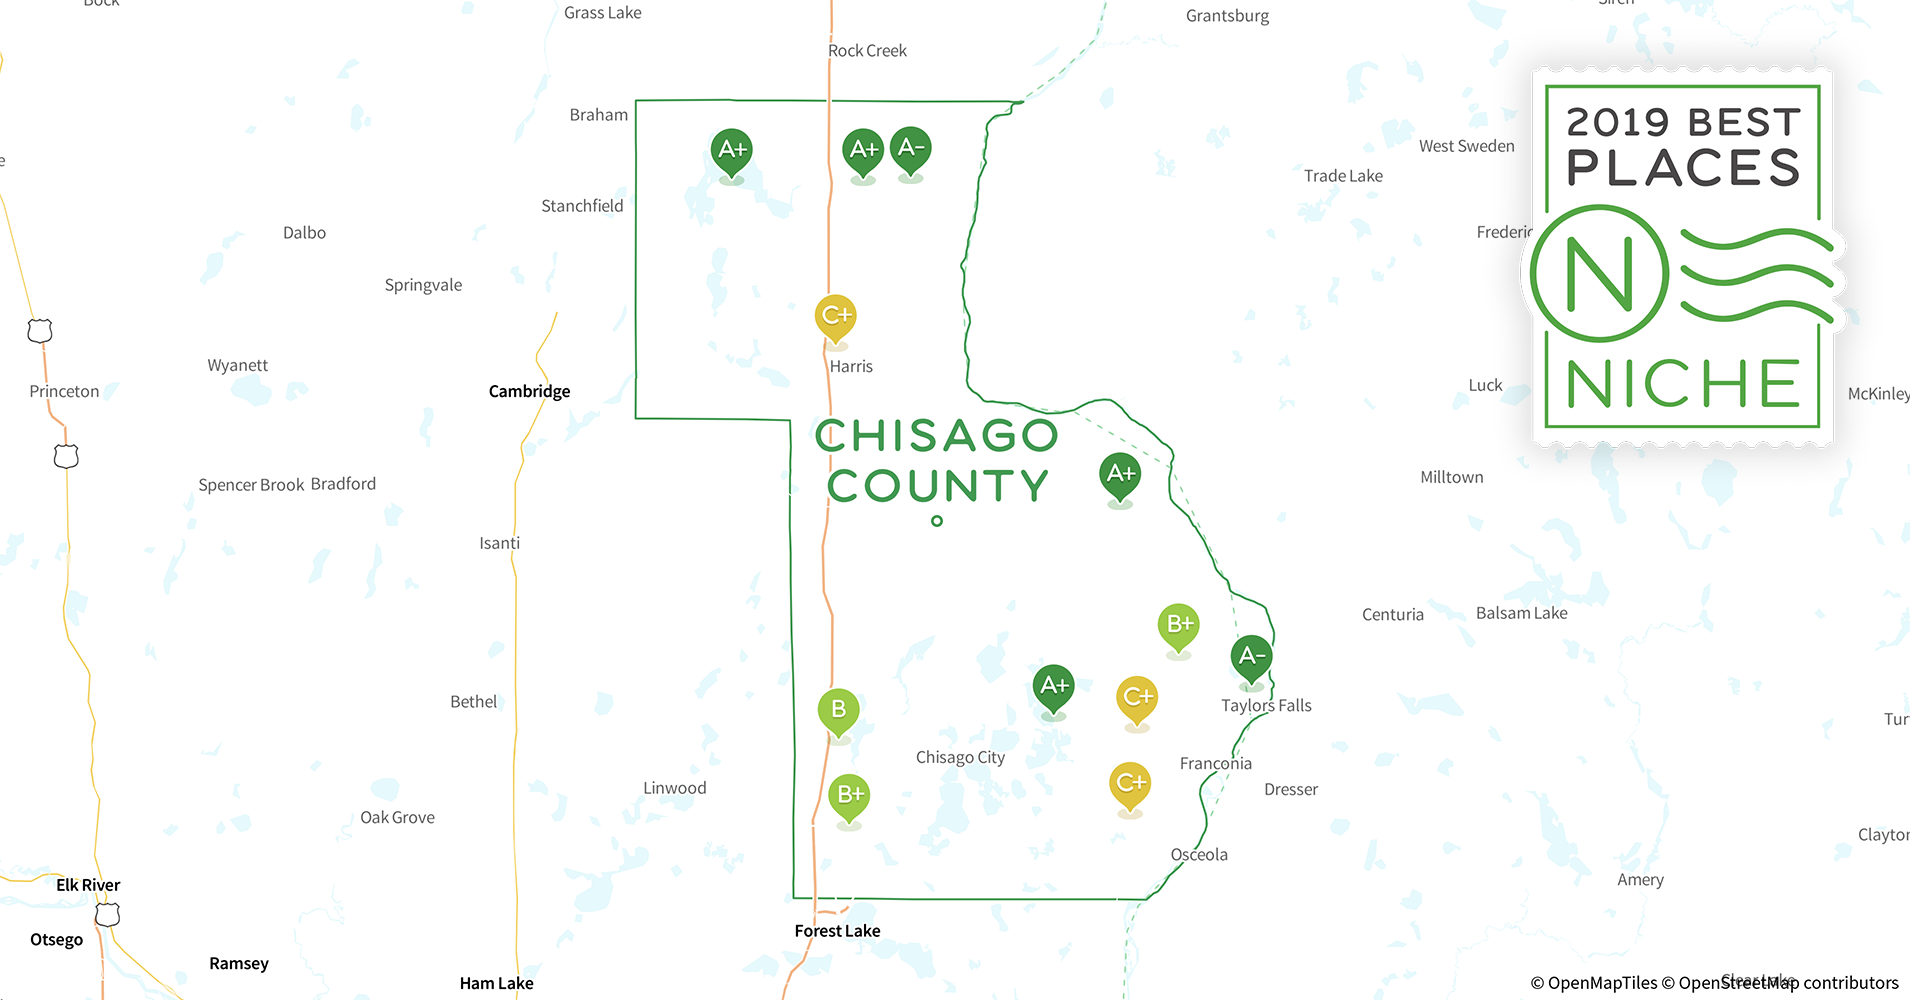 2019 Best Places to Live in Chisago County, MN - Niche Chisago County Map on